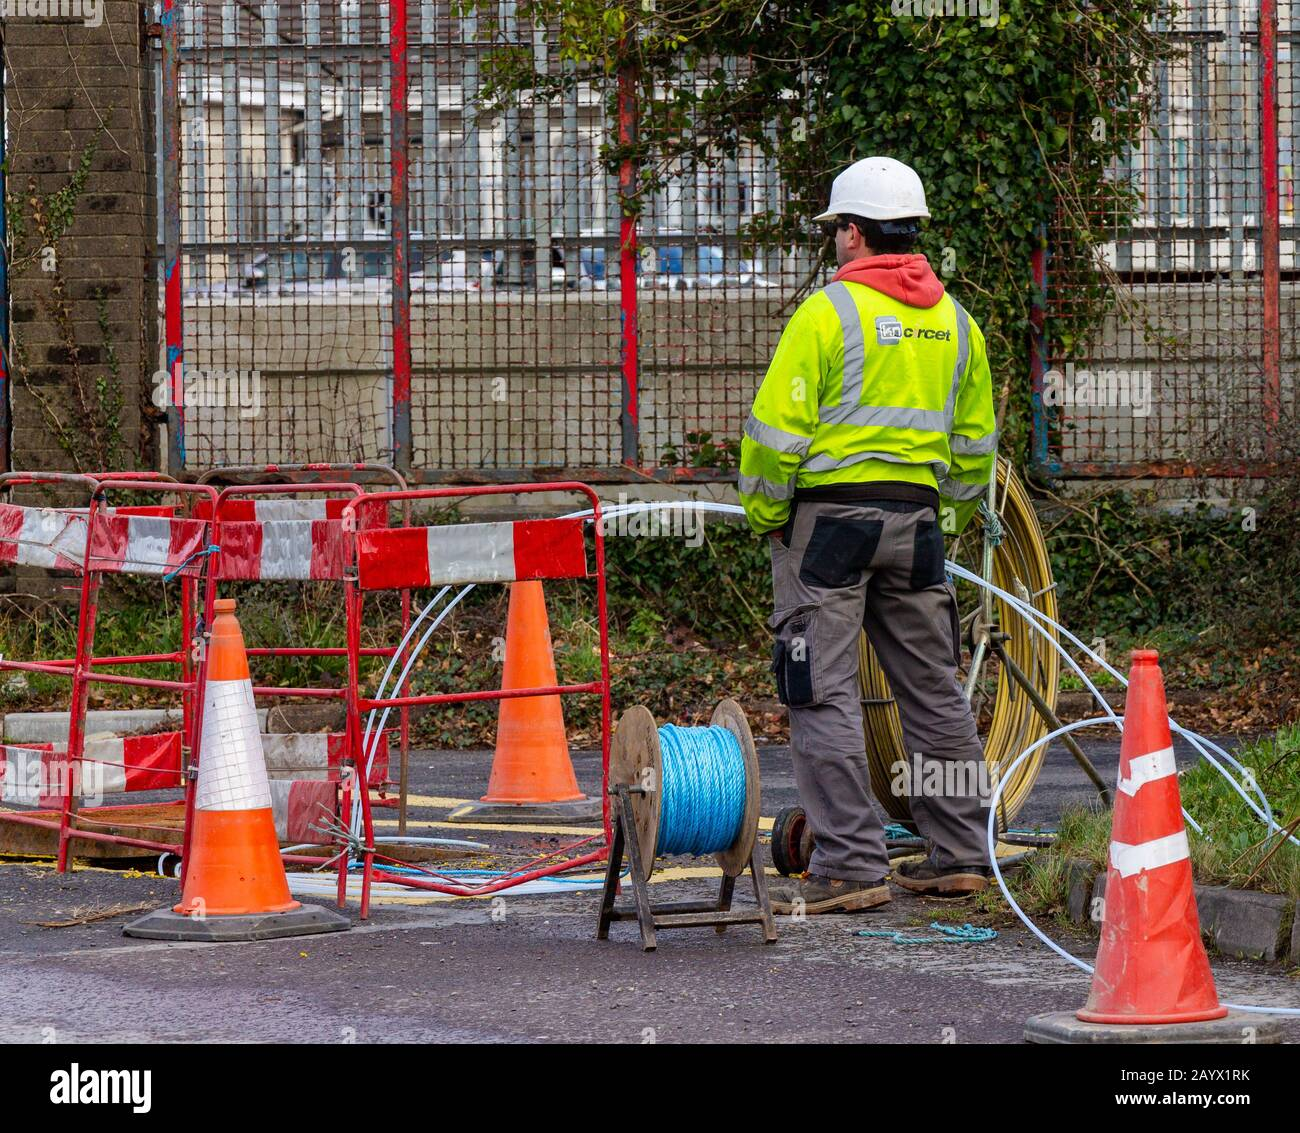 fibre-optic-cable-being-installed-underground-in-skibbereen-west-cork-ireland-2AYX1RK.jpg